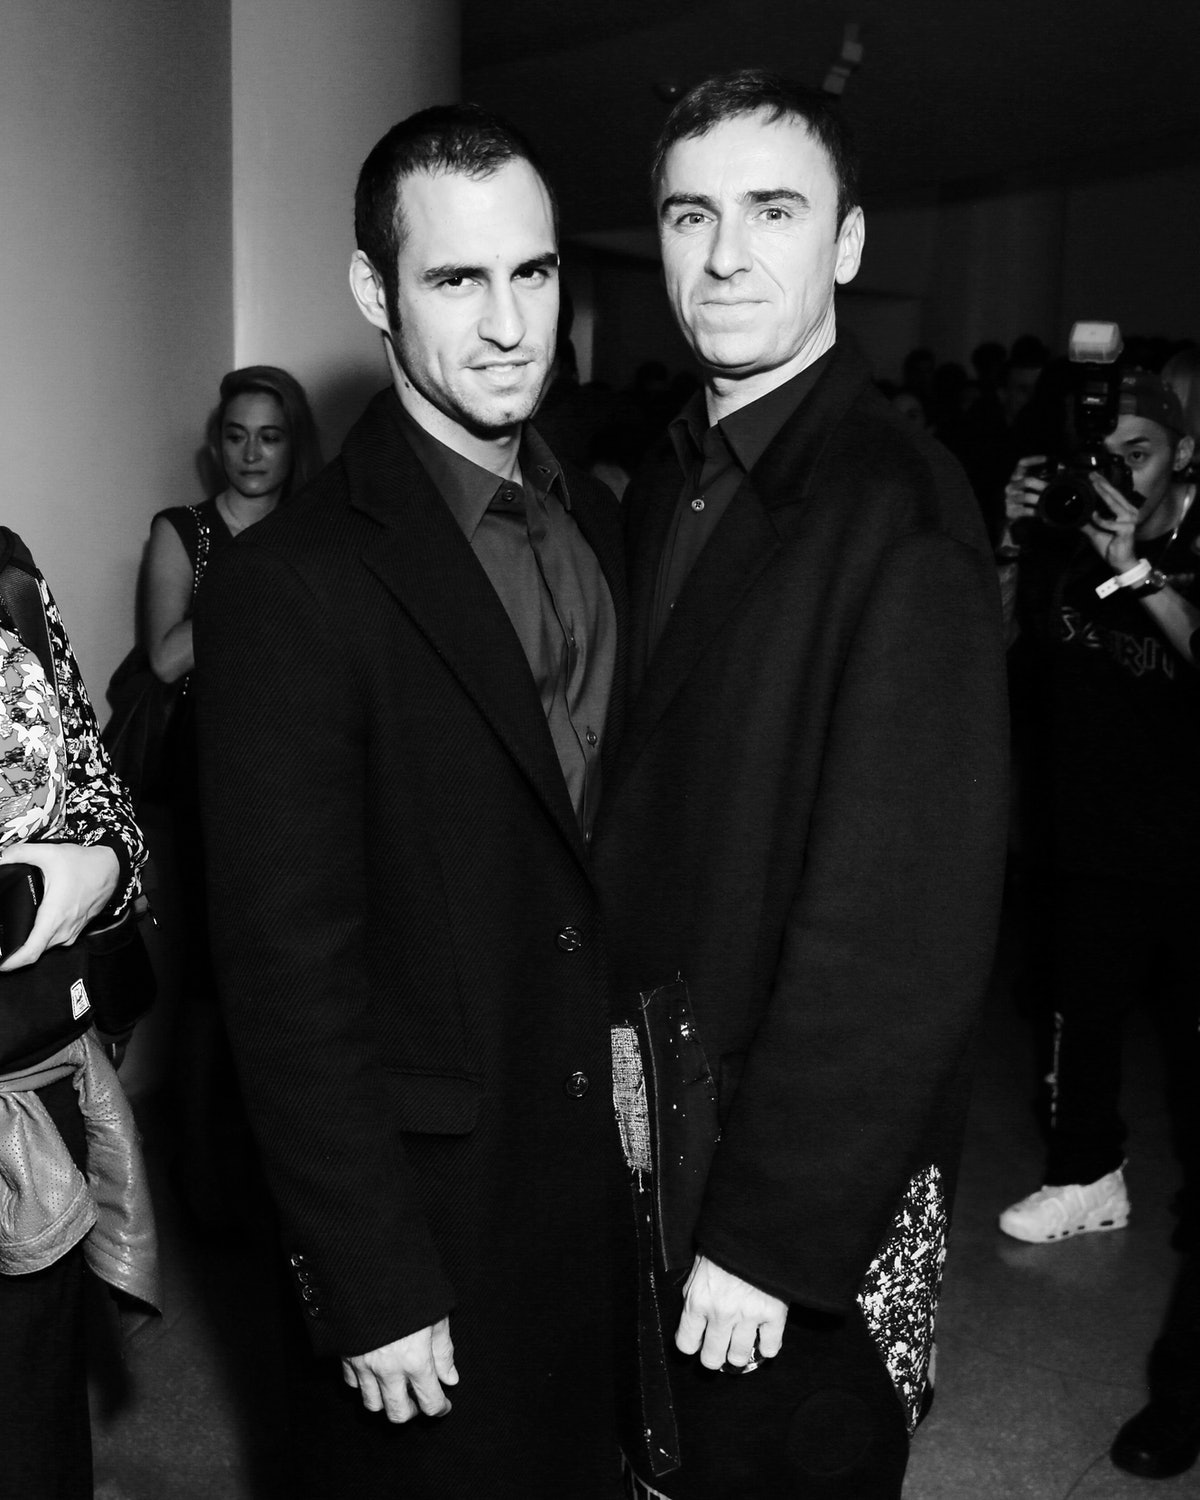 Jean-Georges d'Orazio and Raf Simons